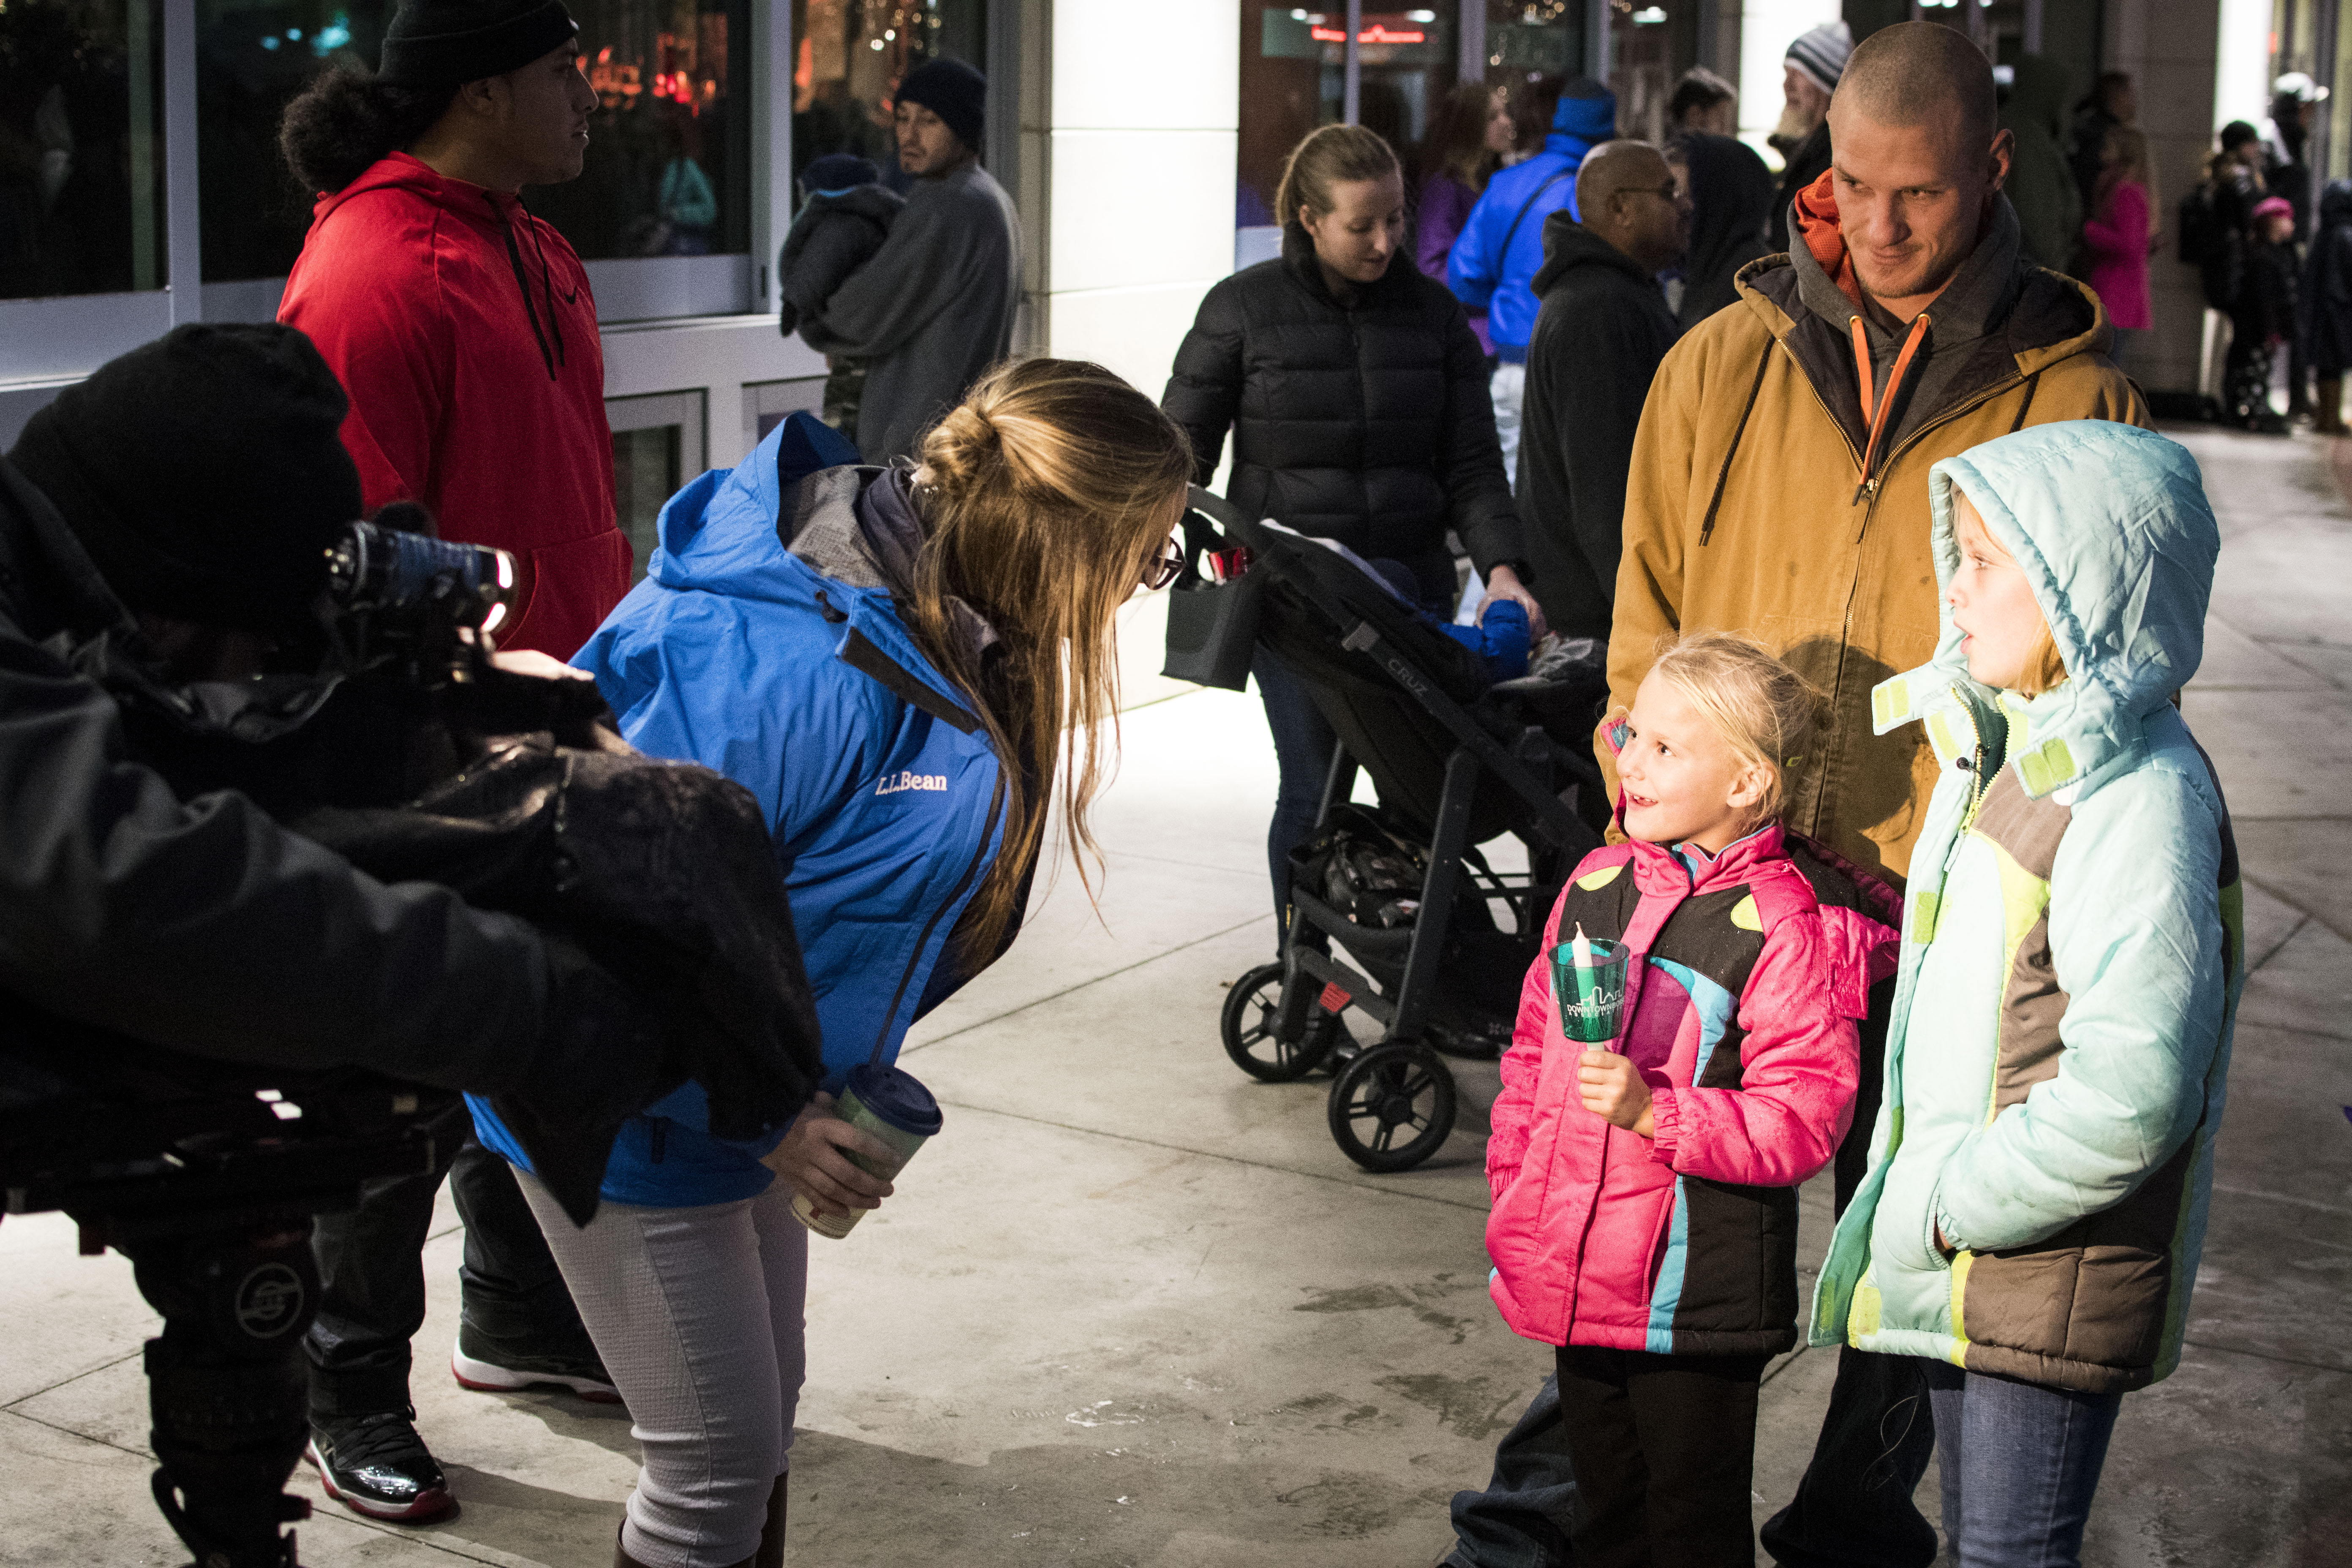 Hundreds of lights danced in the Grove Plaza as the Downtown Boise Tree Lighting took place Friday. People held candles and gathered despite the rain, to watch Mayor Bieter flip the switch to light the giant Christmas tree. (Axel Quartarone Photo)